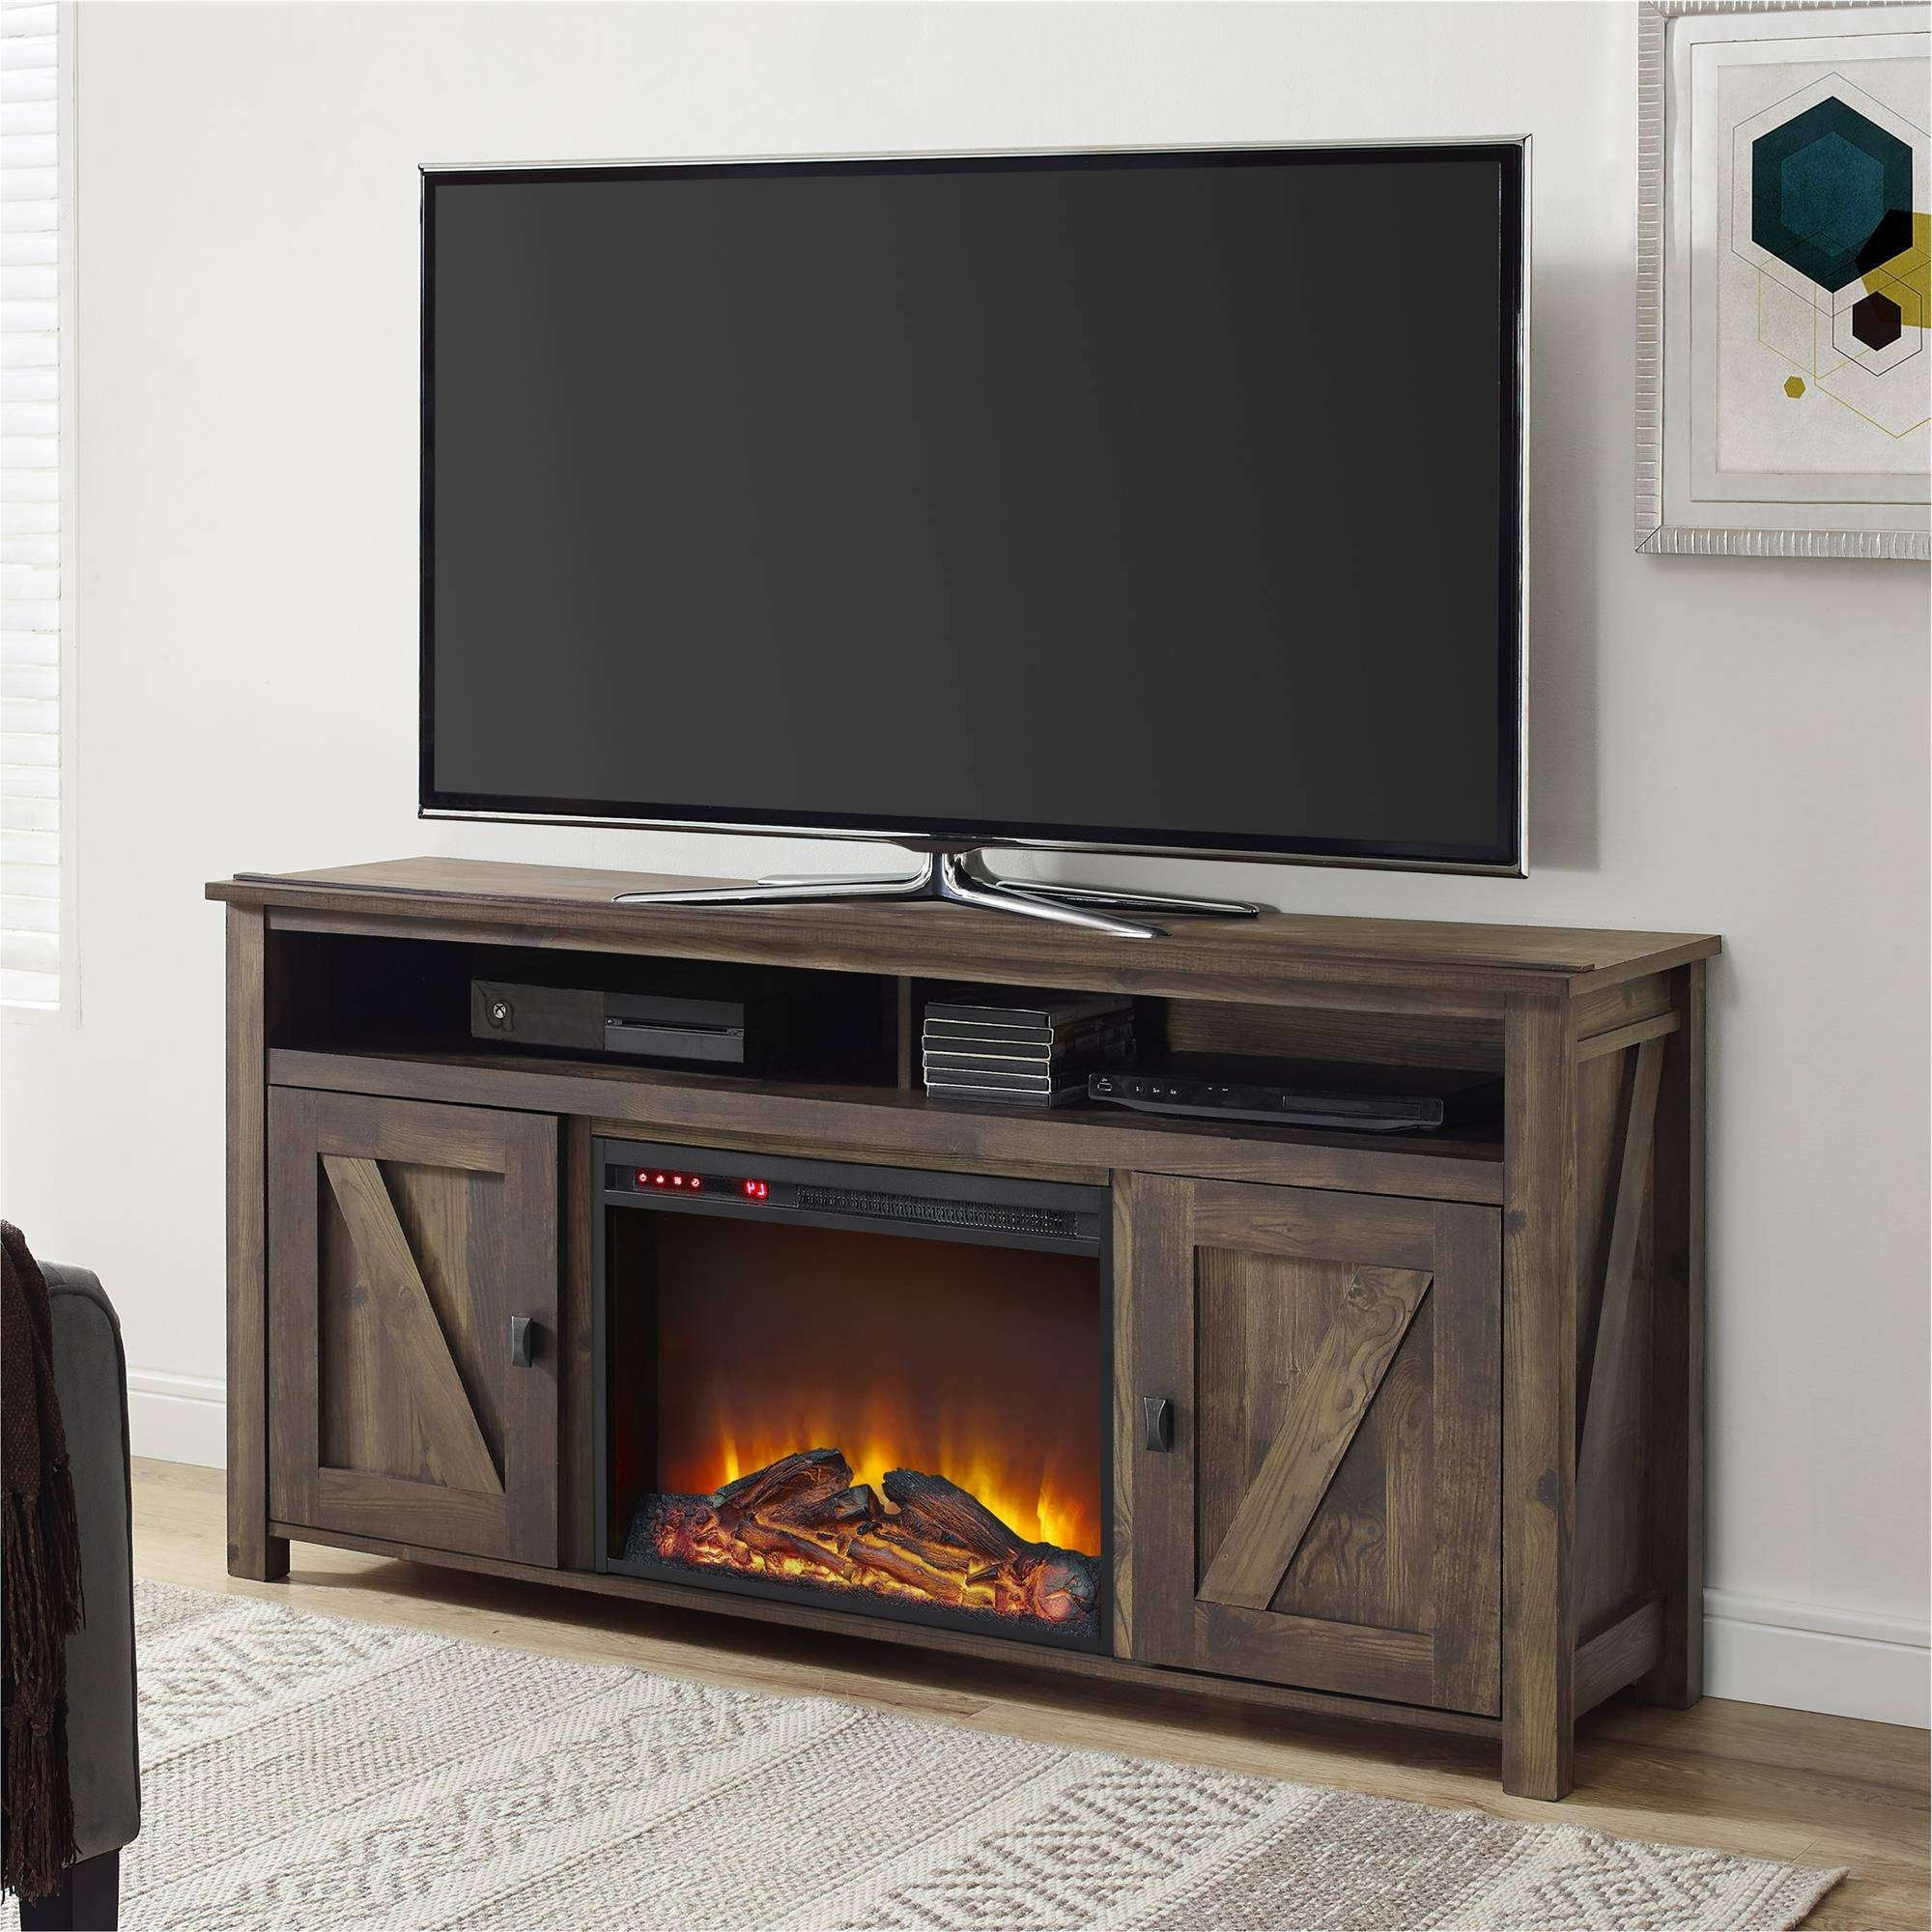 Farmington Electric Fireplace Tv Console For Tvs, Multiple Colors Regarding 50 Inch Fireplace Tv Stands (View 4 of 15)